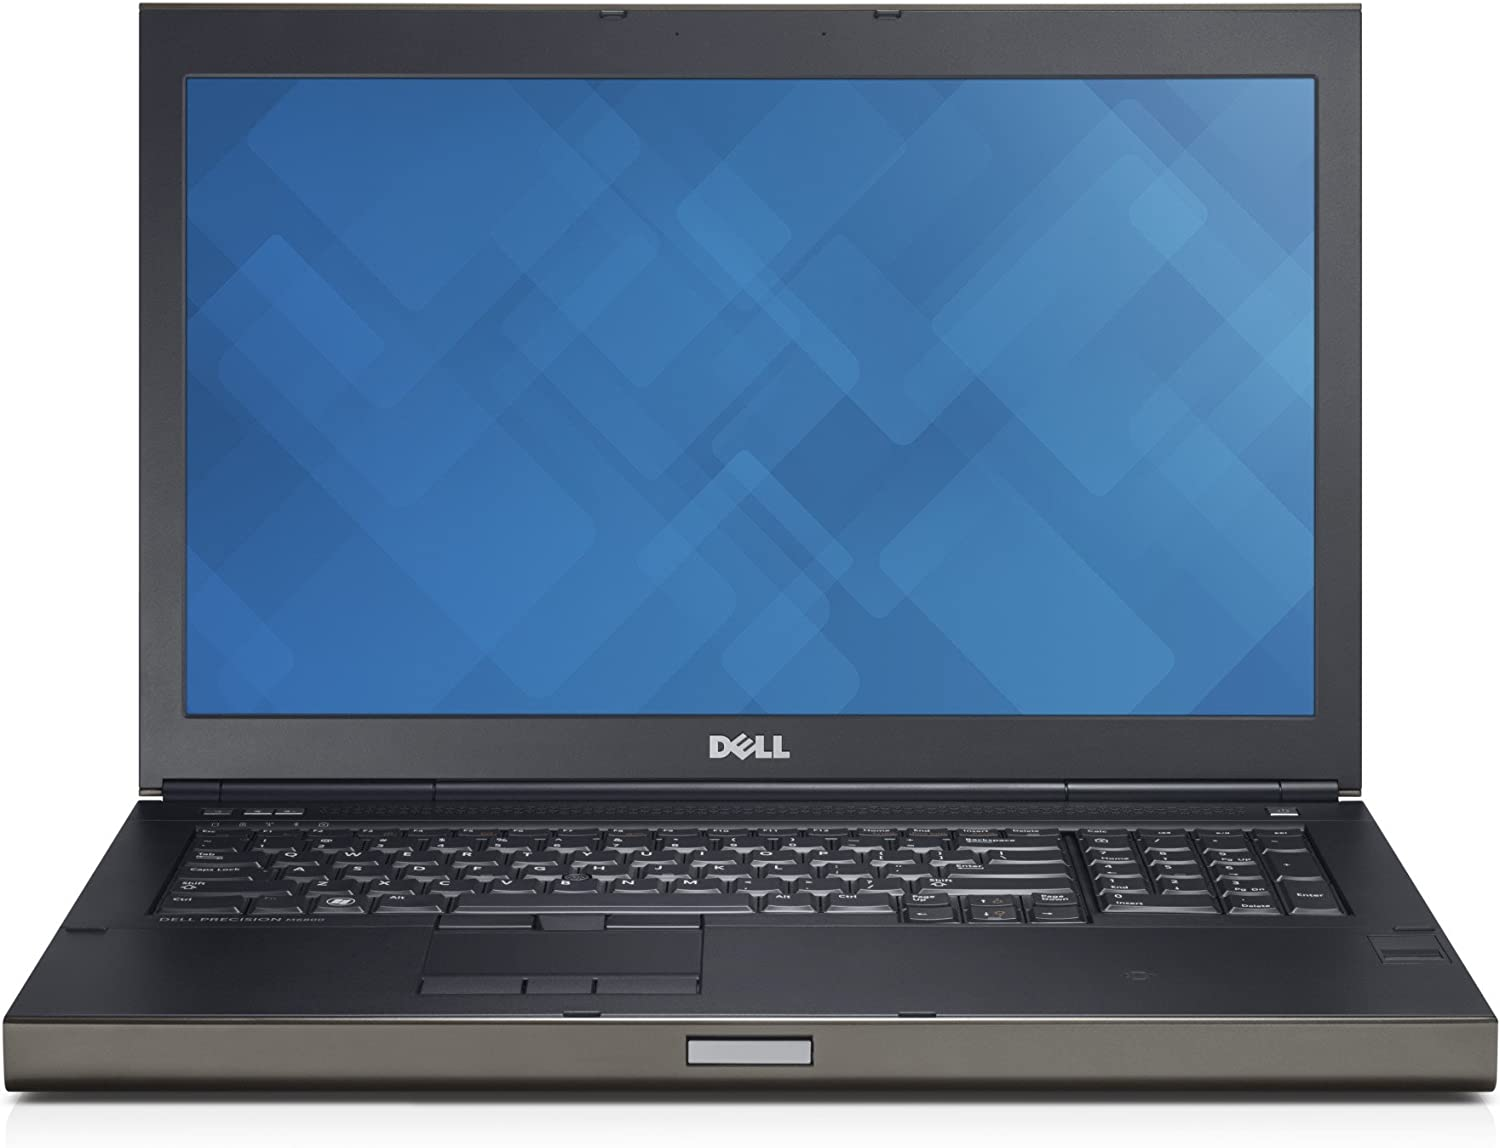 Dell FirePro m6100 2gb DDR5 Laptop Video Card